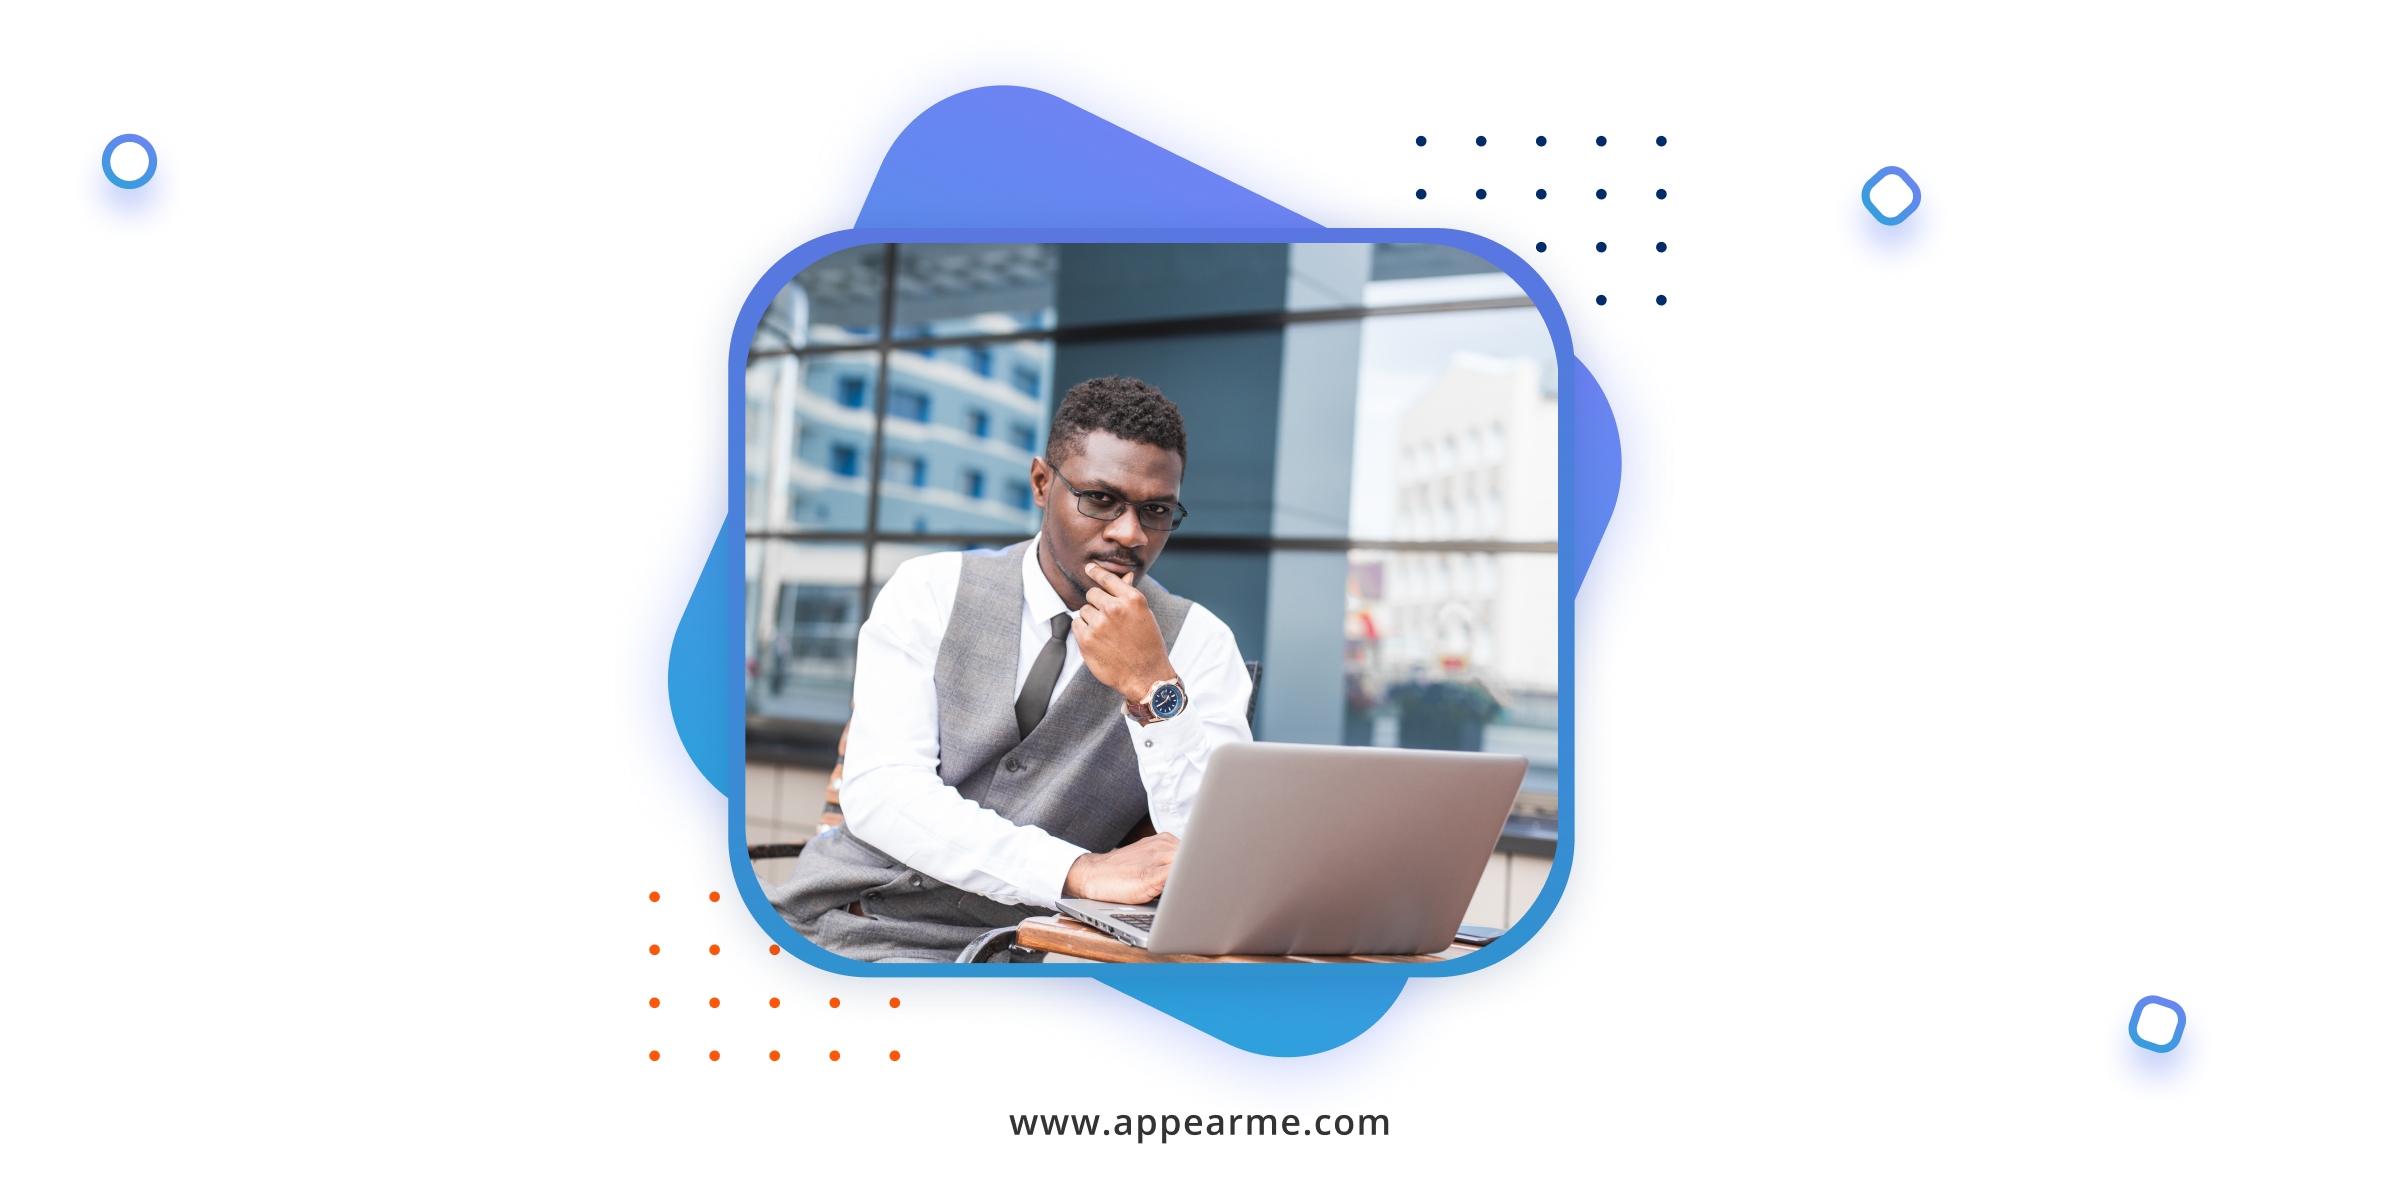 AppearMe – the Application that Every Attorney Should Have